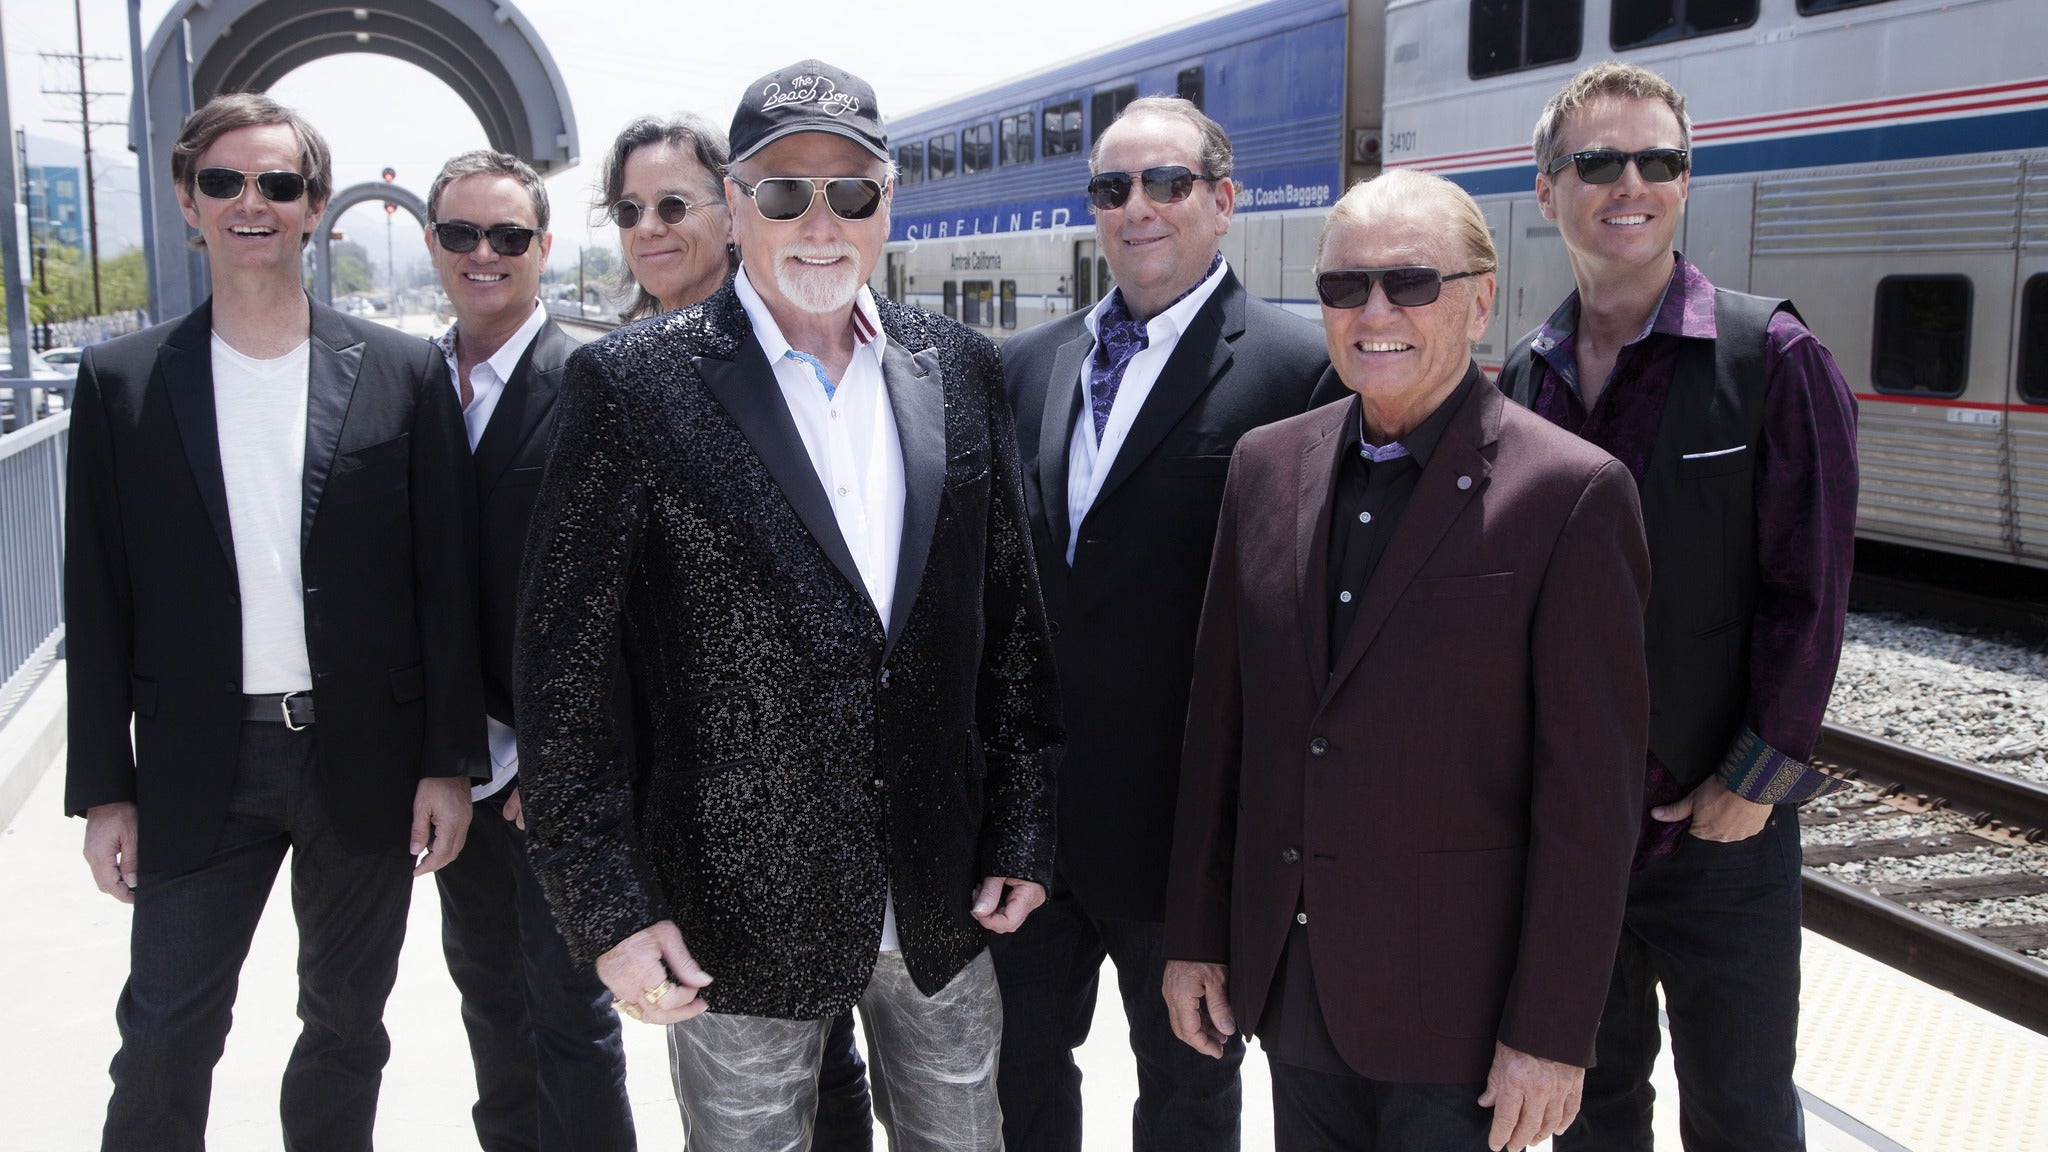 Beach Boys at Palomar Starlight Theater